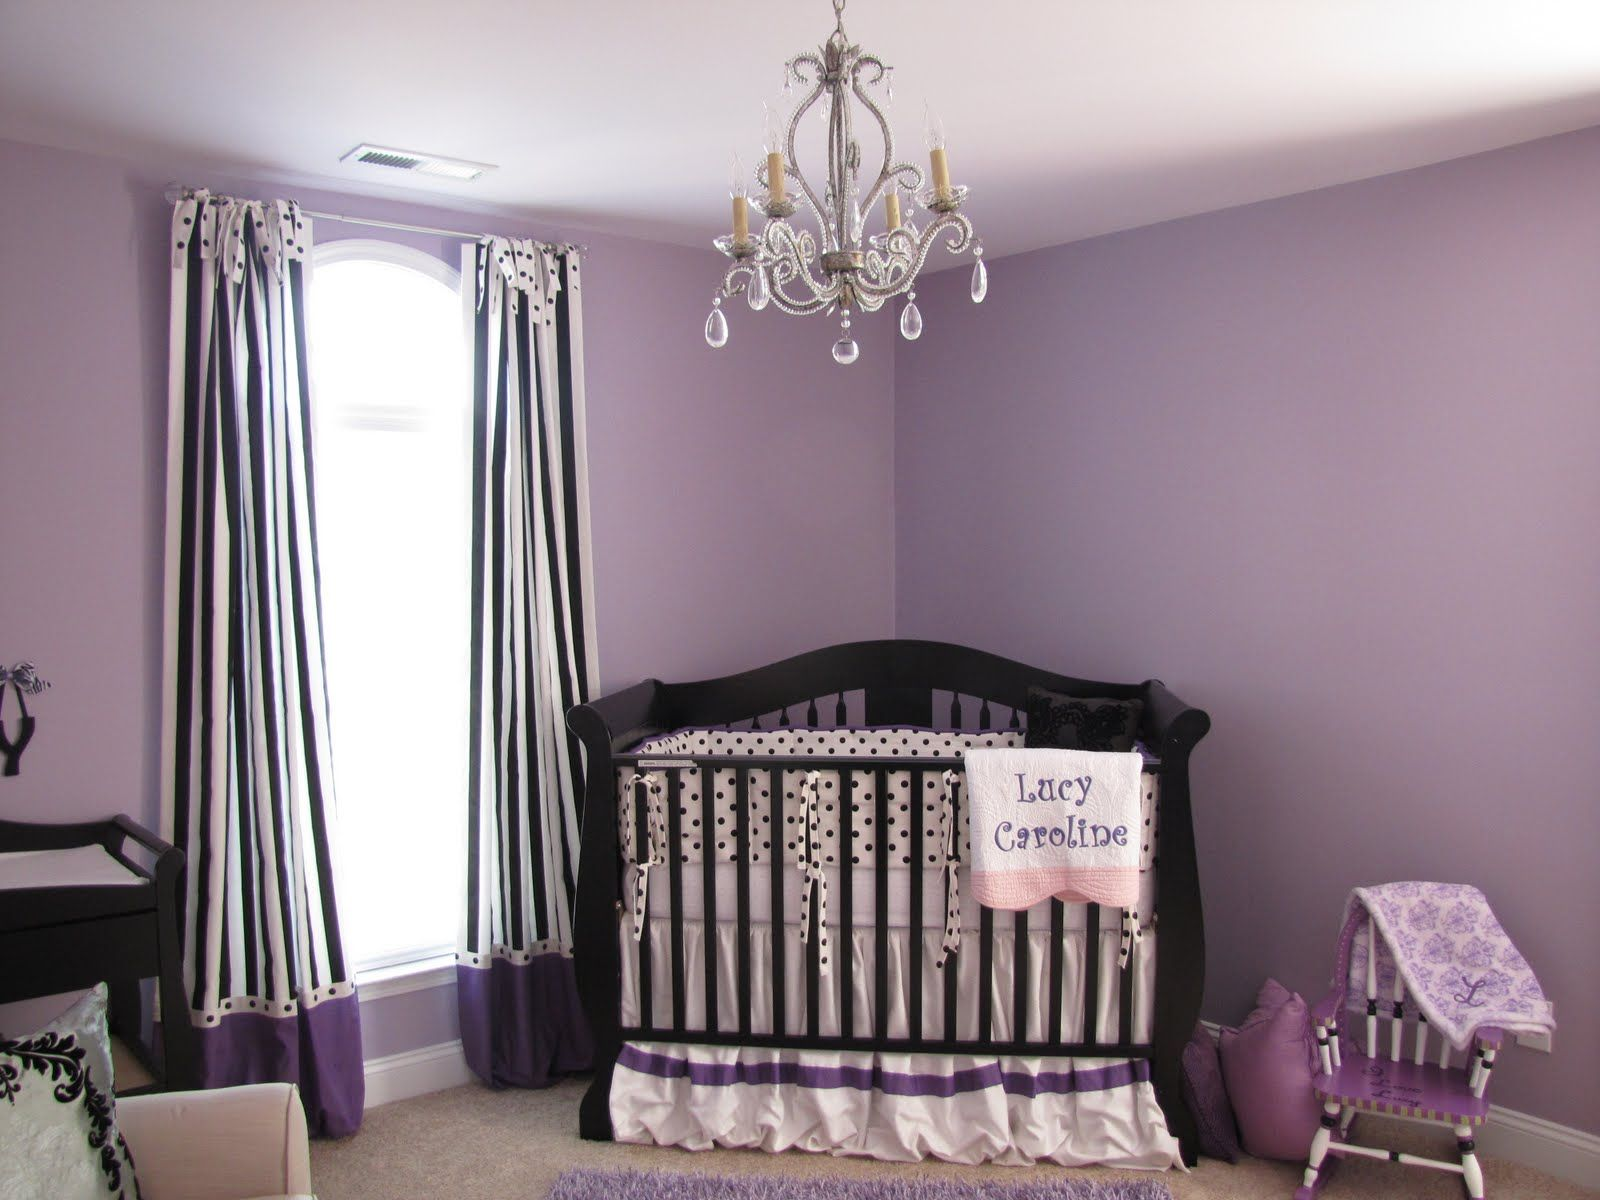 Images for baby girl nursery purple and teal kids rooms images for baby girl nursery purple and teal arubaitofo Images